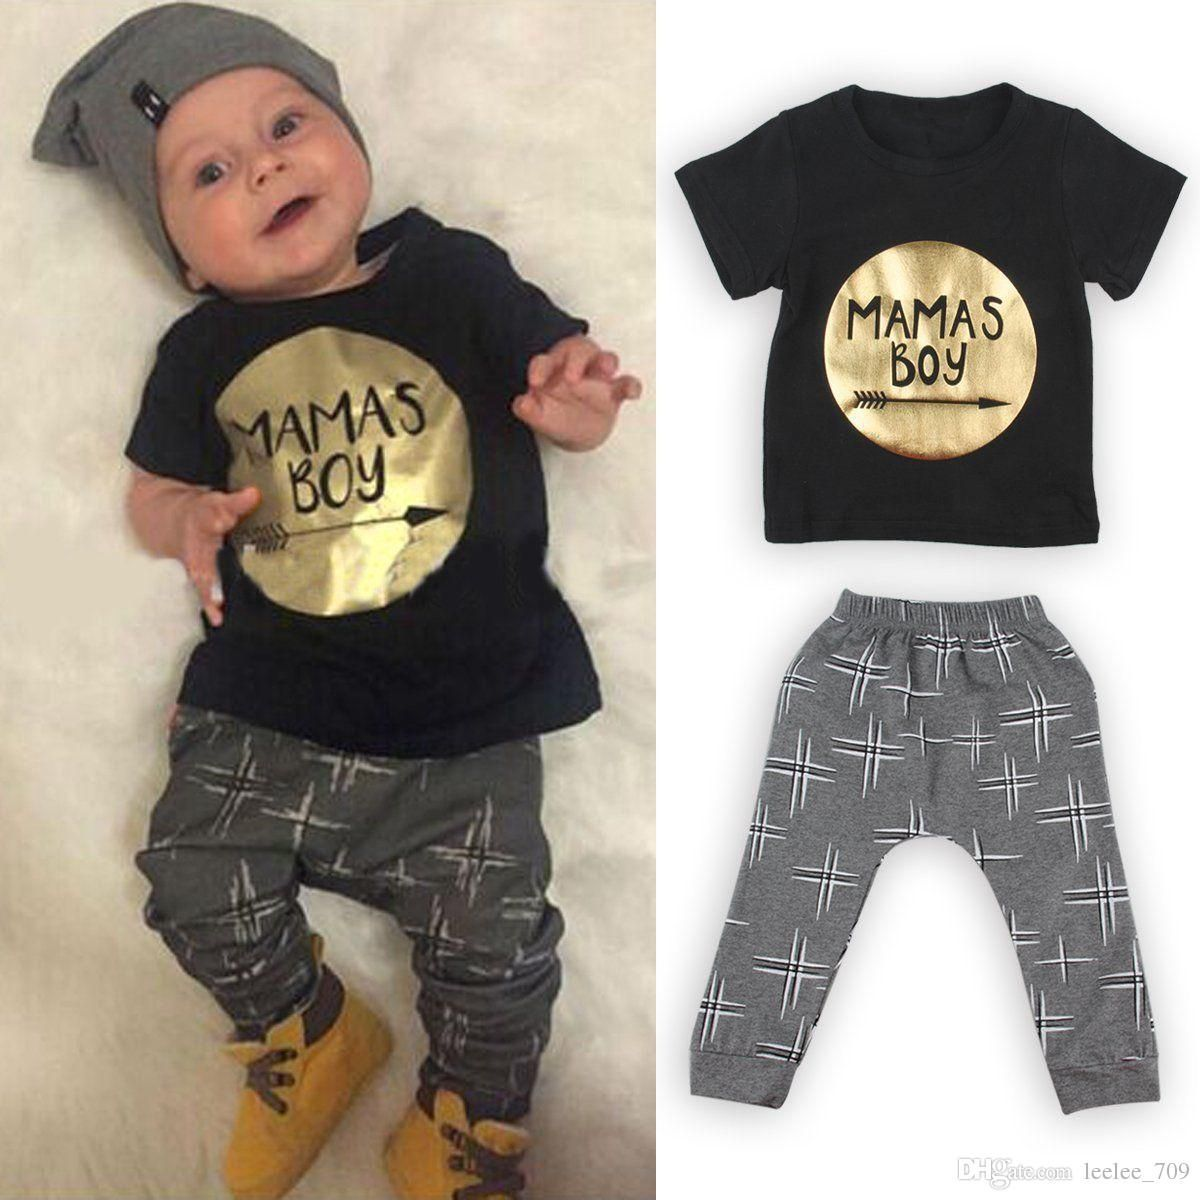 Our Little Mistakes  Baby boy outfits, Kids outfits, Boy outfits